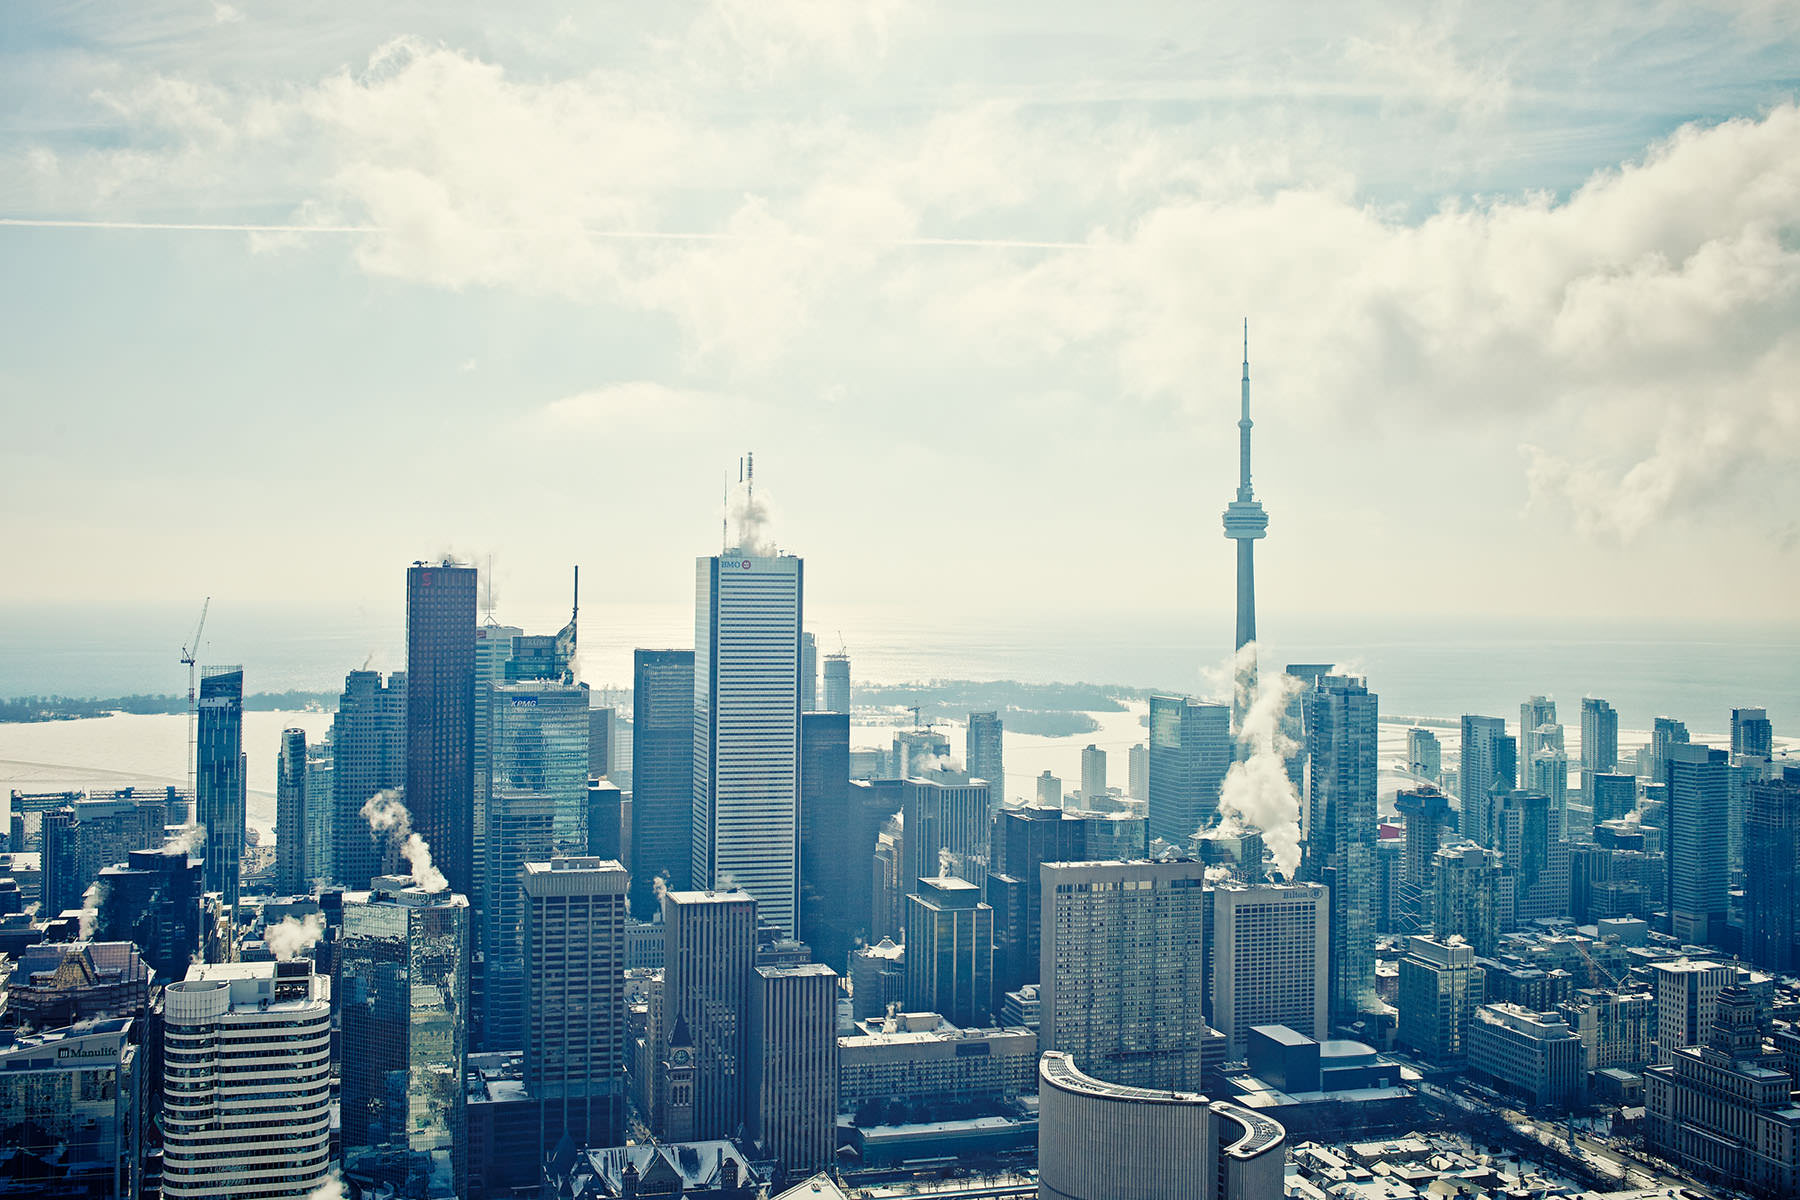 A city scape image taken for a publishes book in Toronto from on top of the Aurora building. It